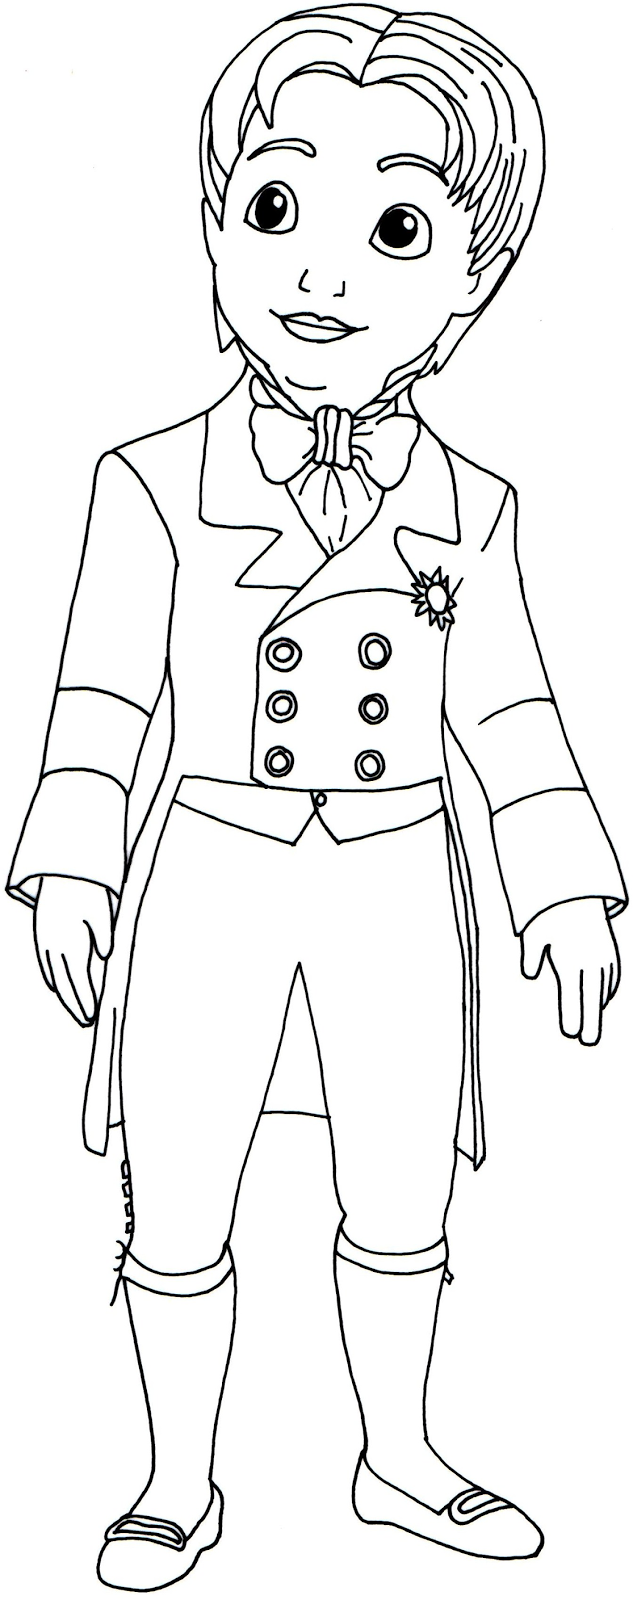 Prince coloring pages to download